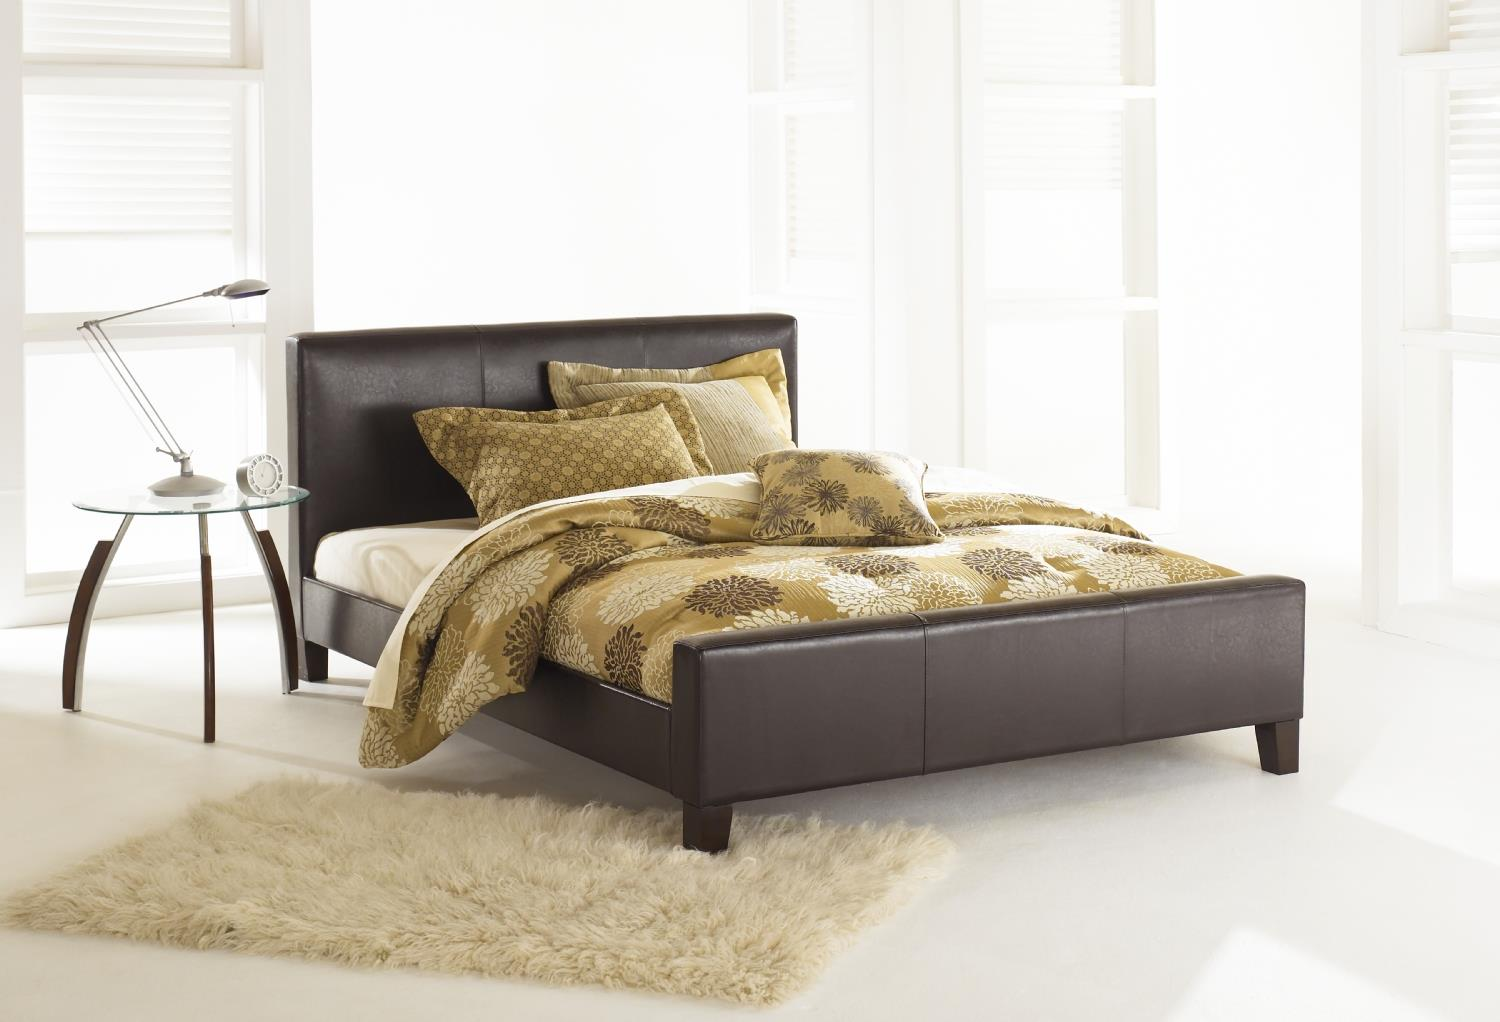 Fashion Bed Group Euro Full Bed - Item Number: D79227135